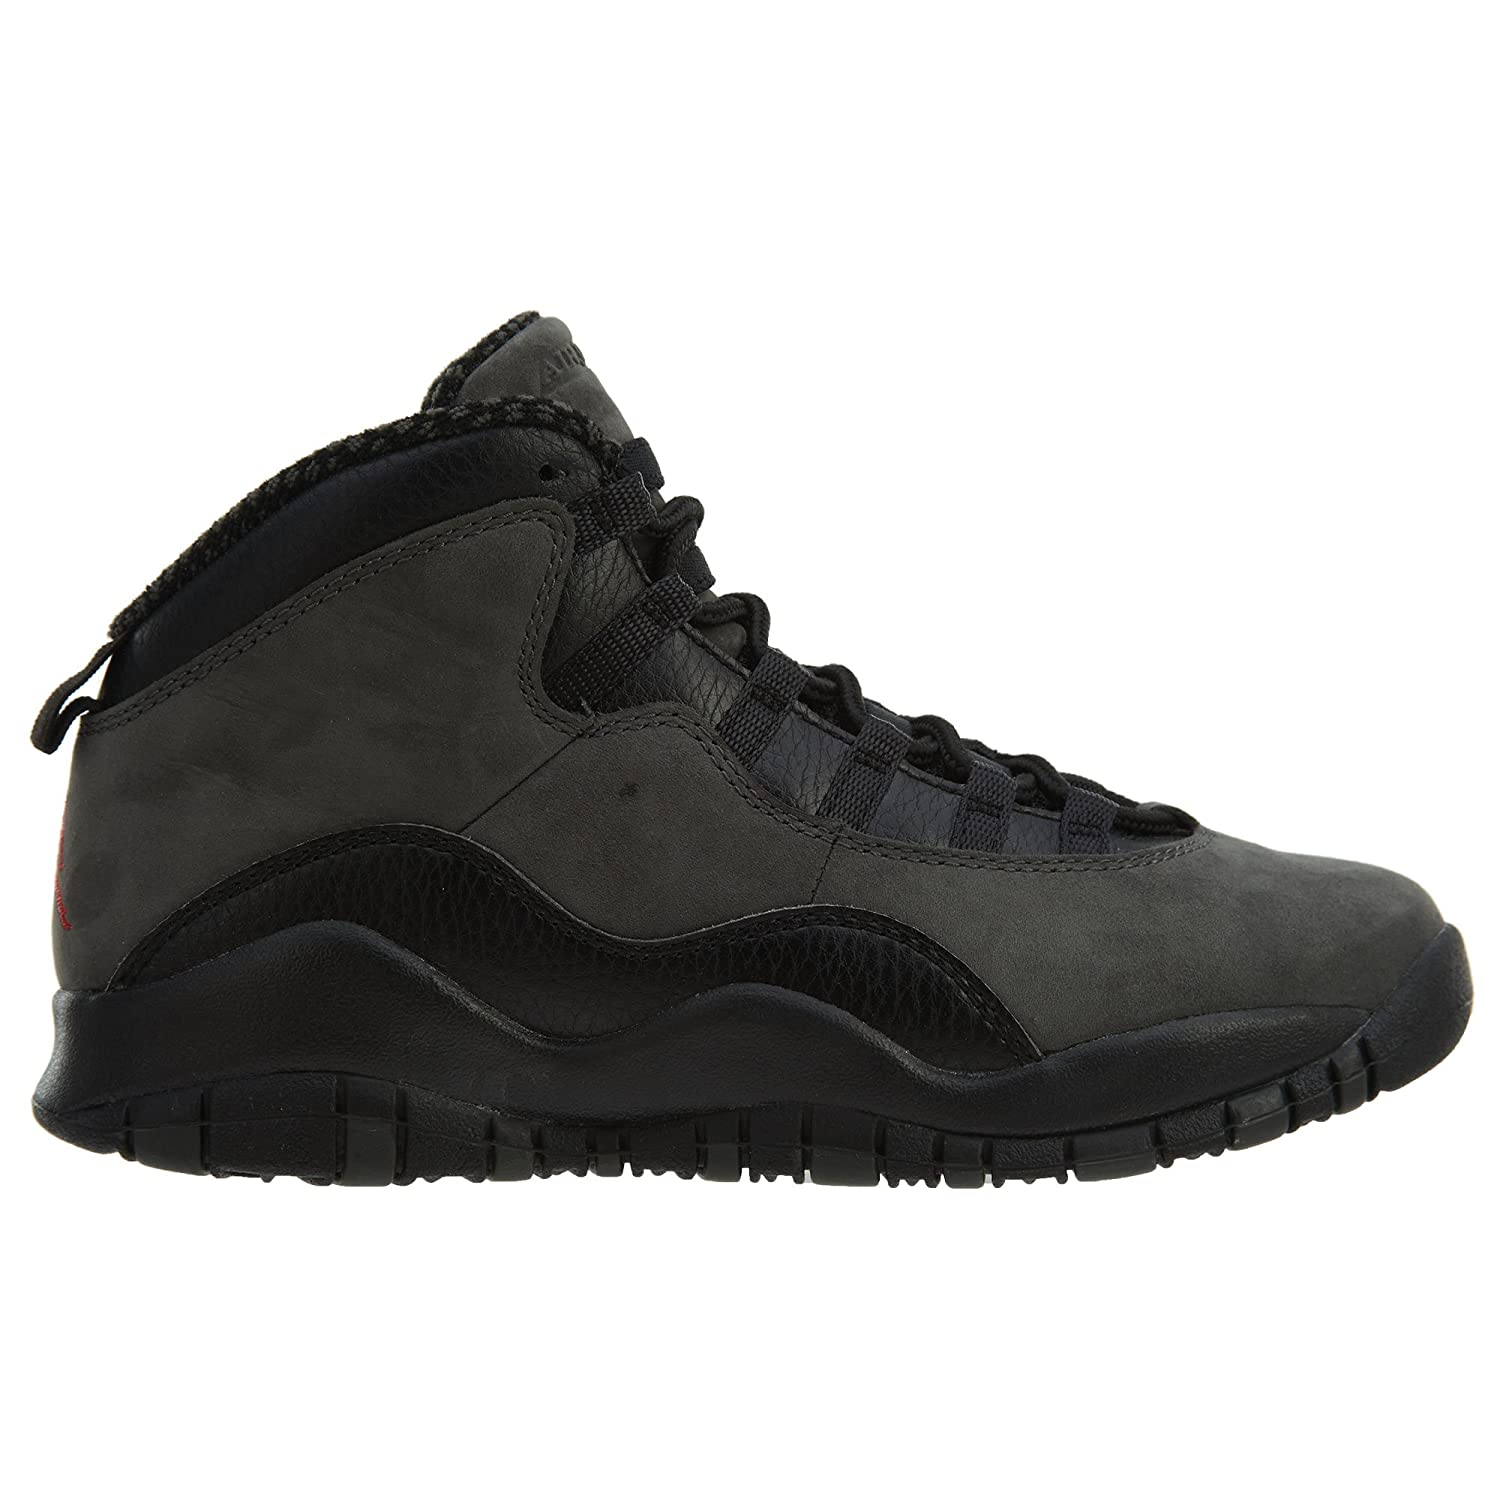 brand new cbc48 d75a9 Amazon.com   Jordan Air X (10) Retro (Dark Shadow) (Kids)   Shoes